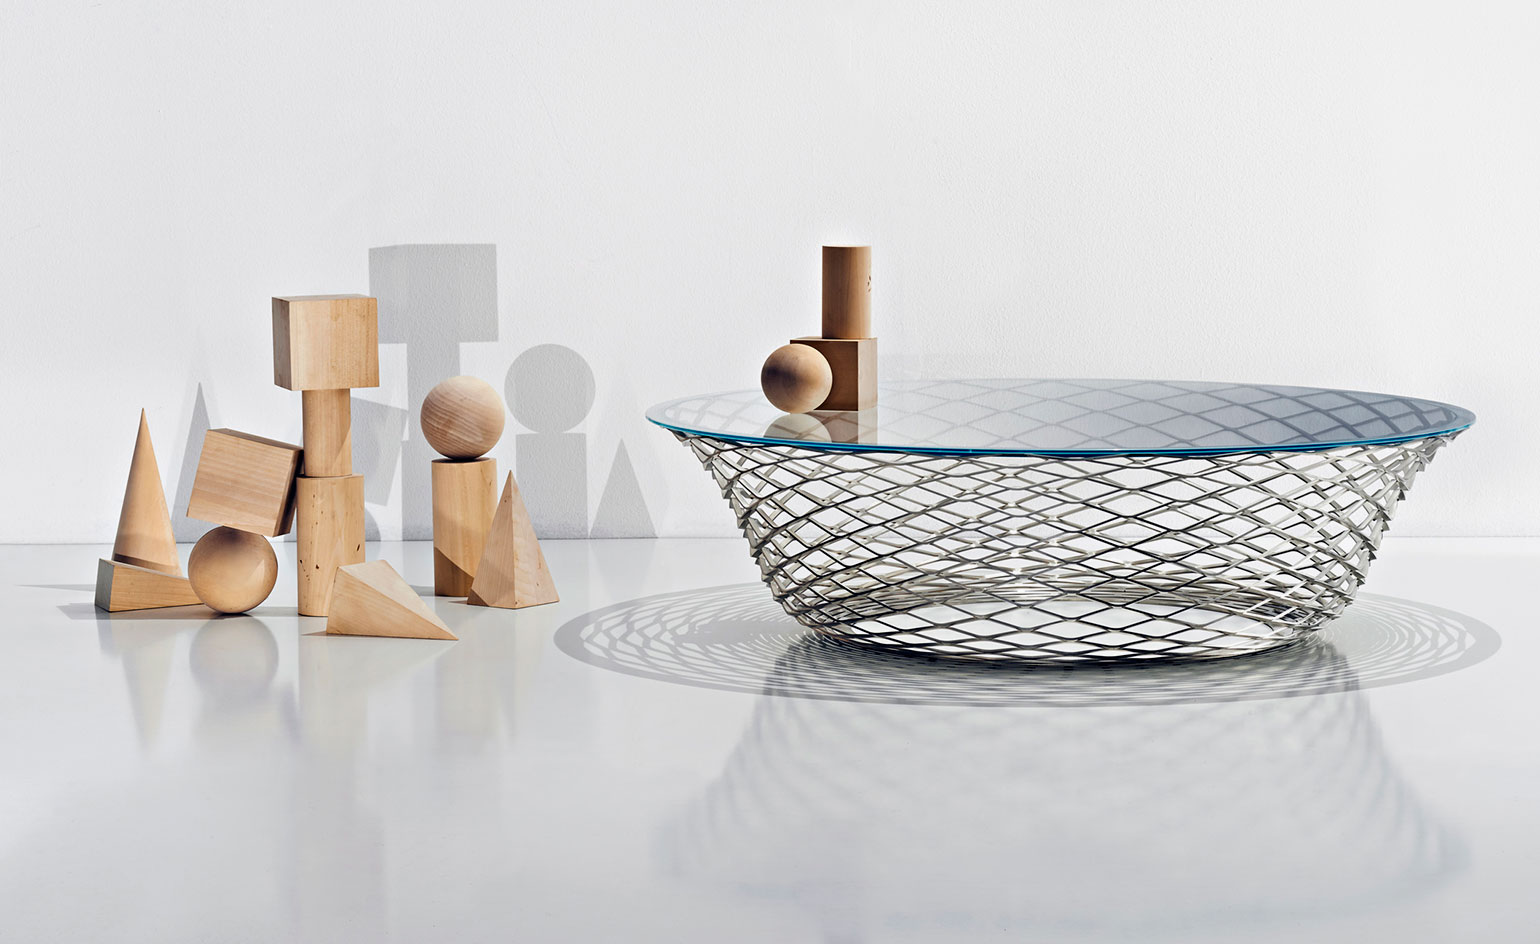 Norman Foster: Molteni, Walter Knoll, Artemide and Alessi are just a handful of the architect's design partners. Pictured: Molteni's 'Teso' table, by Foster + Partners  Read more at https://www.wallpaper.com/design/top-20-architects-who-have-turned-their-hand-to-product-design#2e3ompB8yJVmfYLT.99